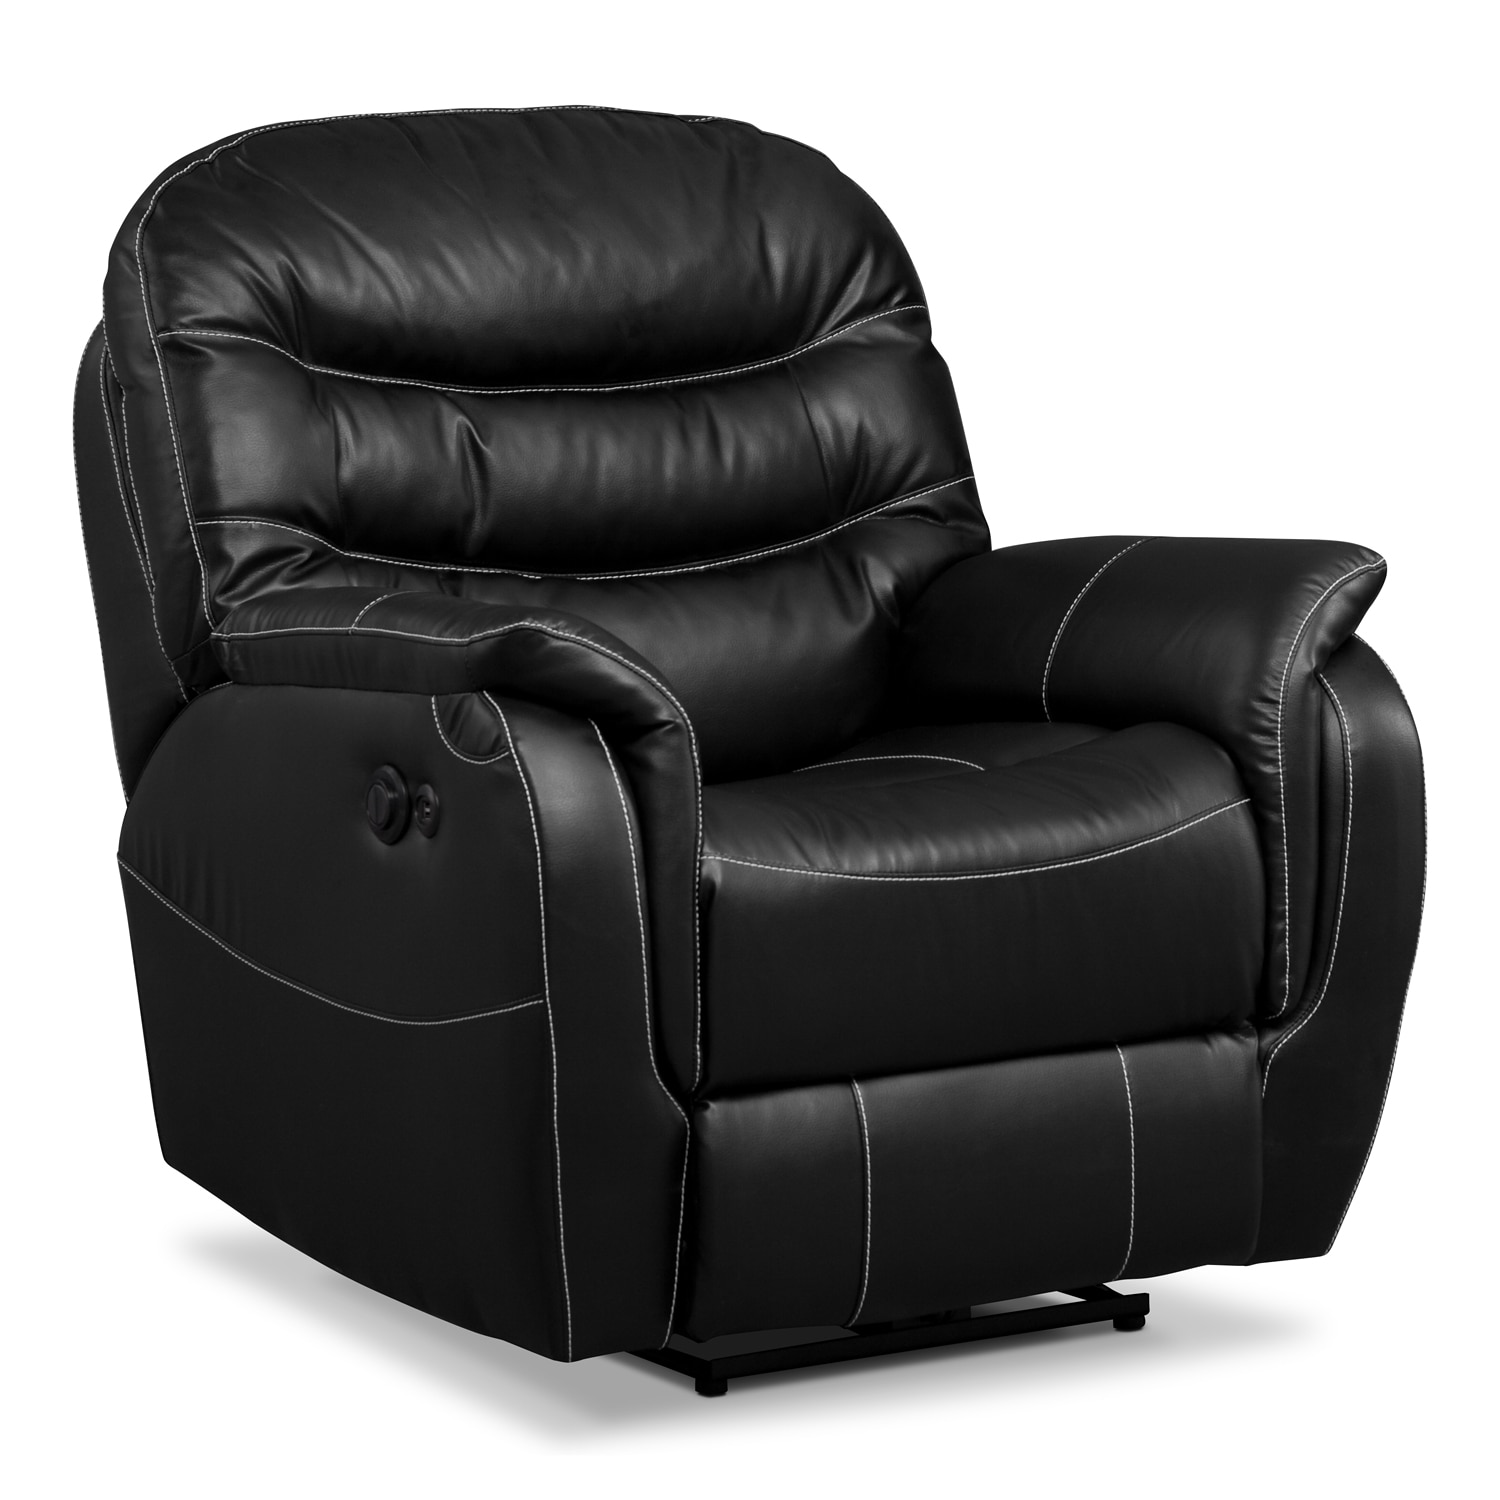 Vibe Leather Power Recliner Value City Furniture : 280461 from valuecity.com size 1500 x 1500 jpeg 584kB